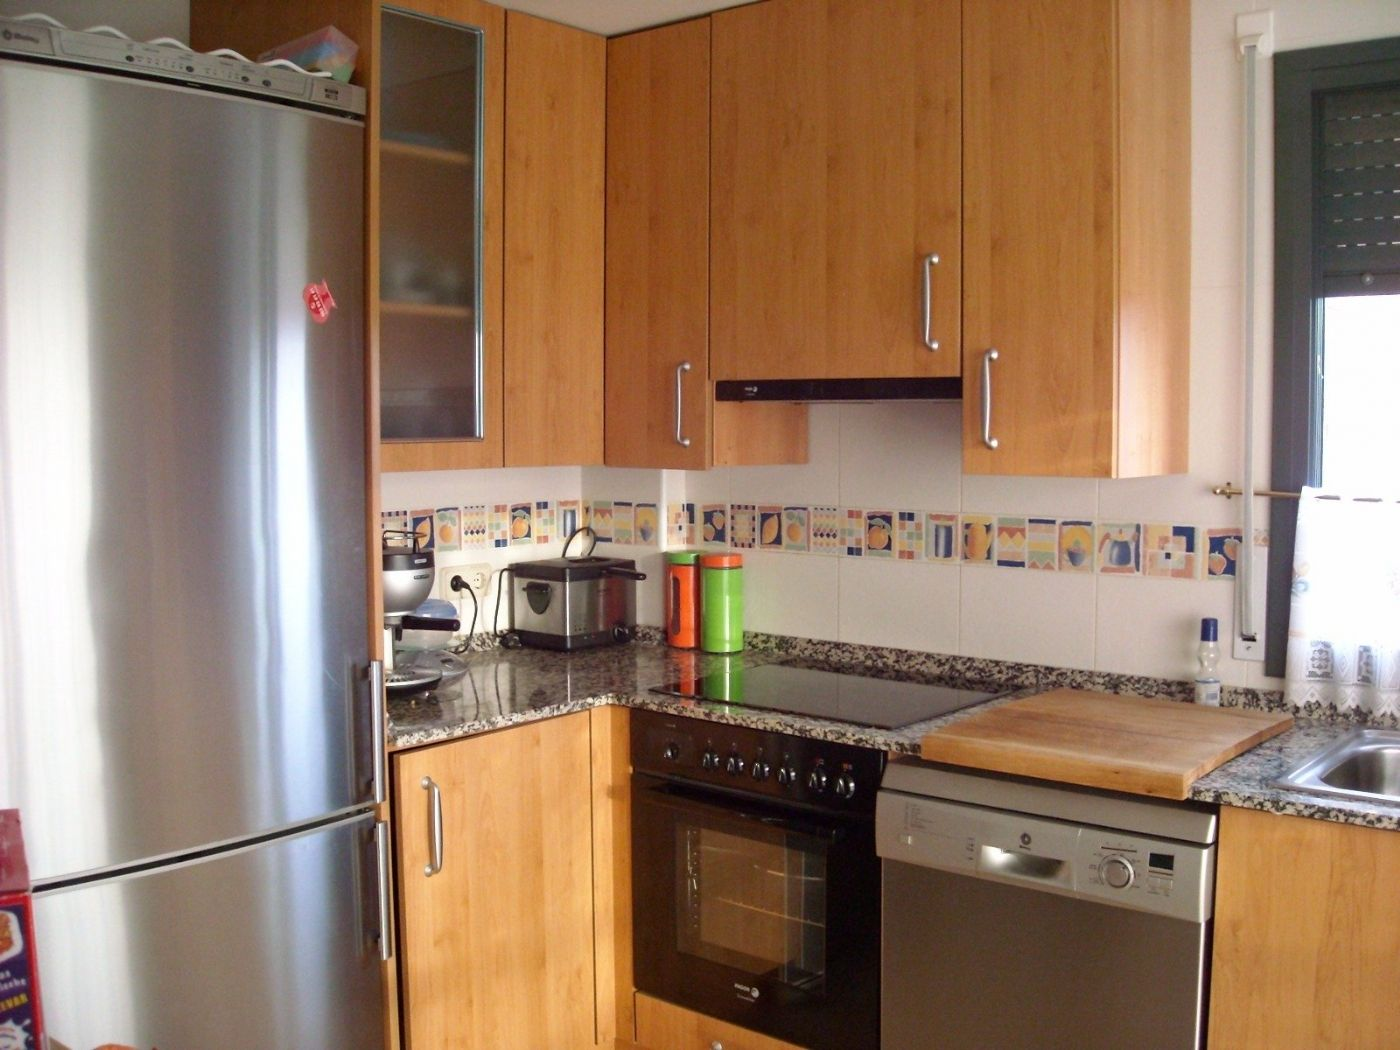 Appartamento in Carrer vila de toluges, 3. Impecable piso semi-nuevo con parking y trastero!!